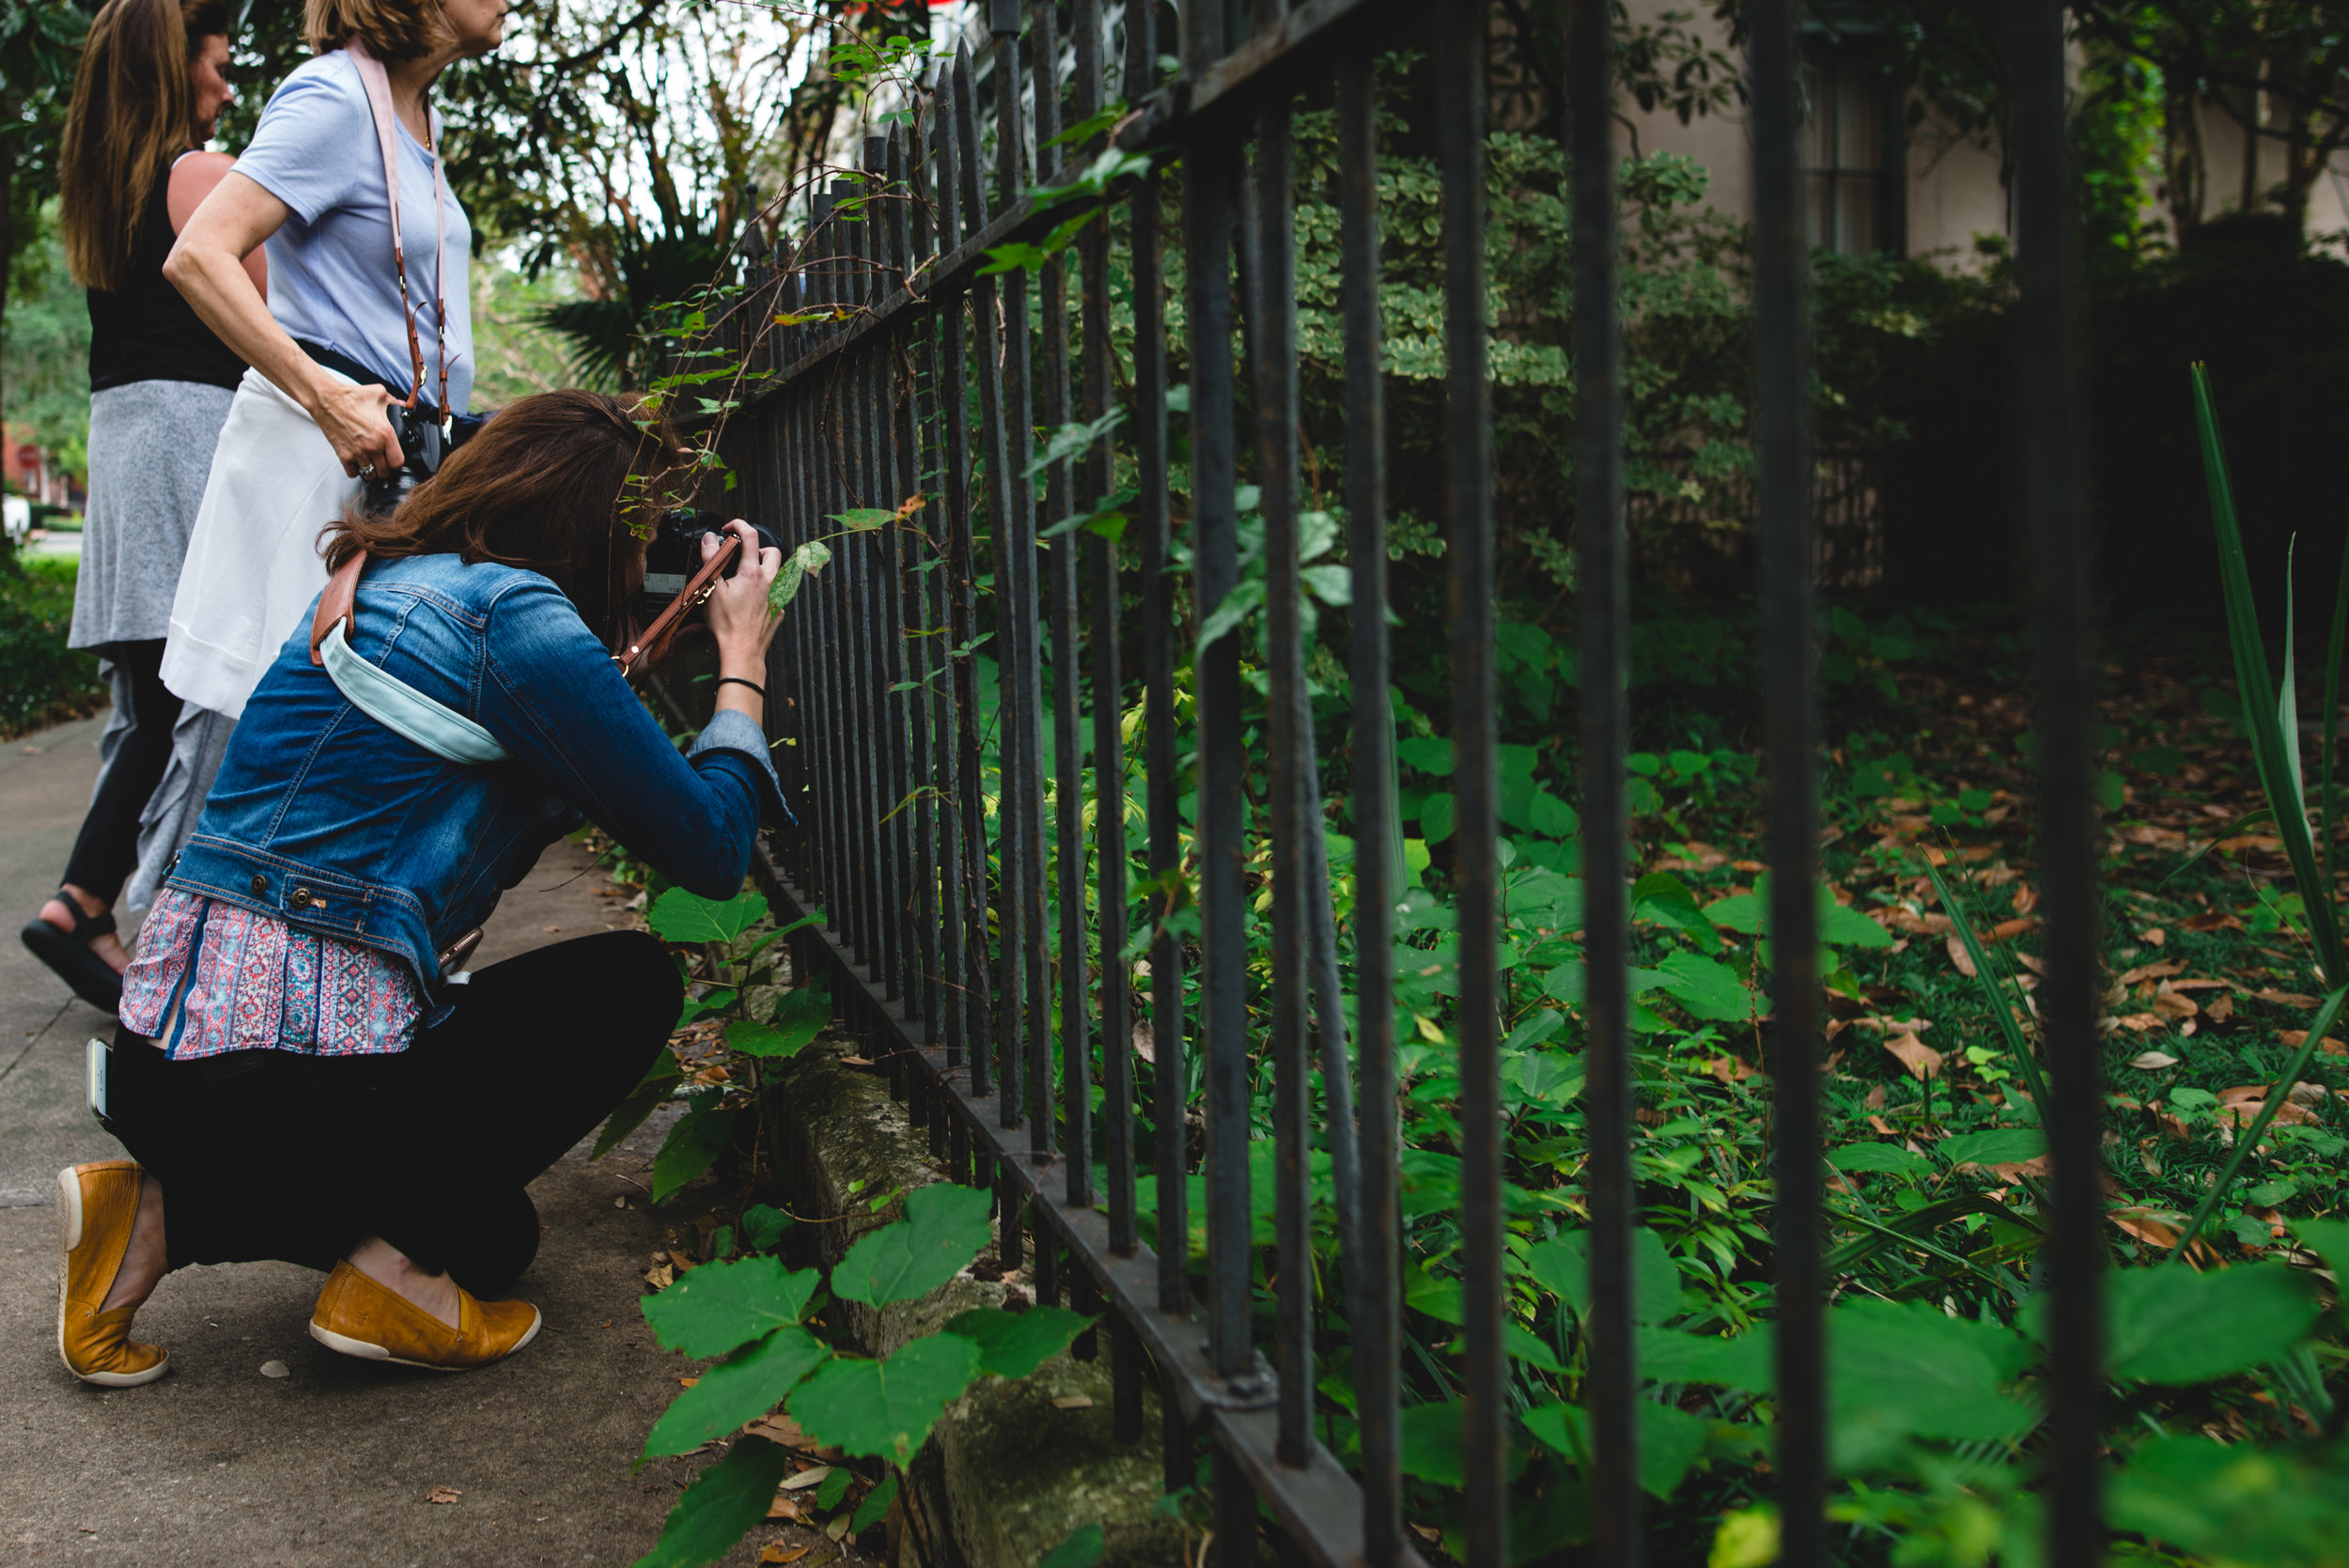 Learn photography - in a supportive environment